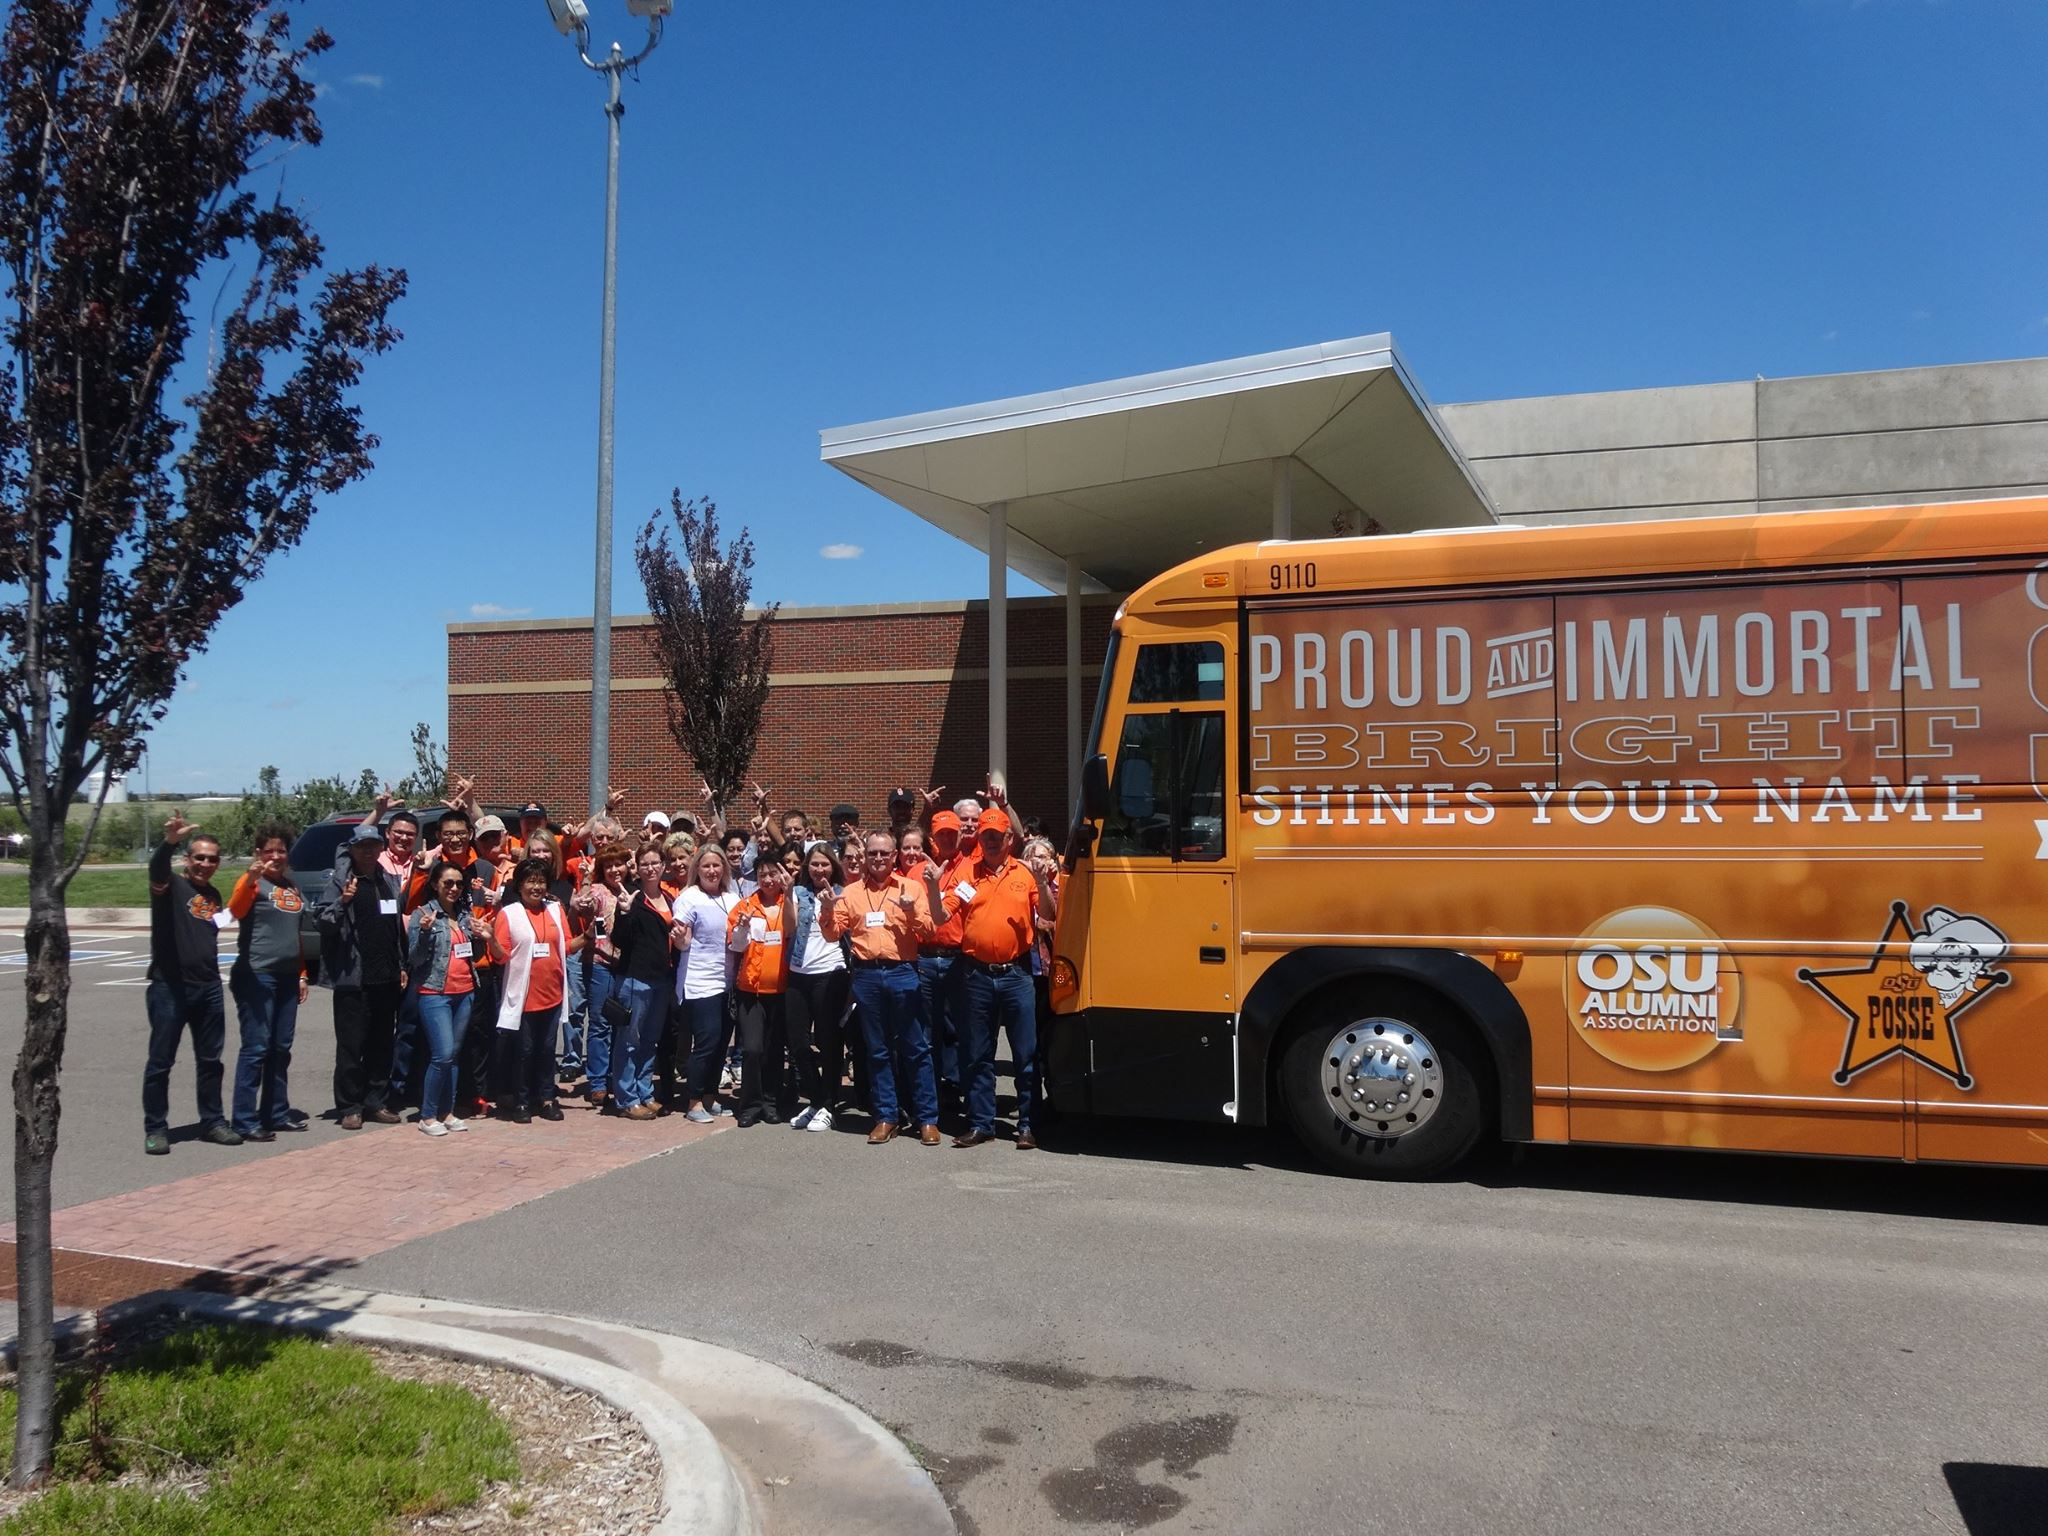 OSU faculty and friends tour NW Oklahoma